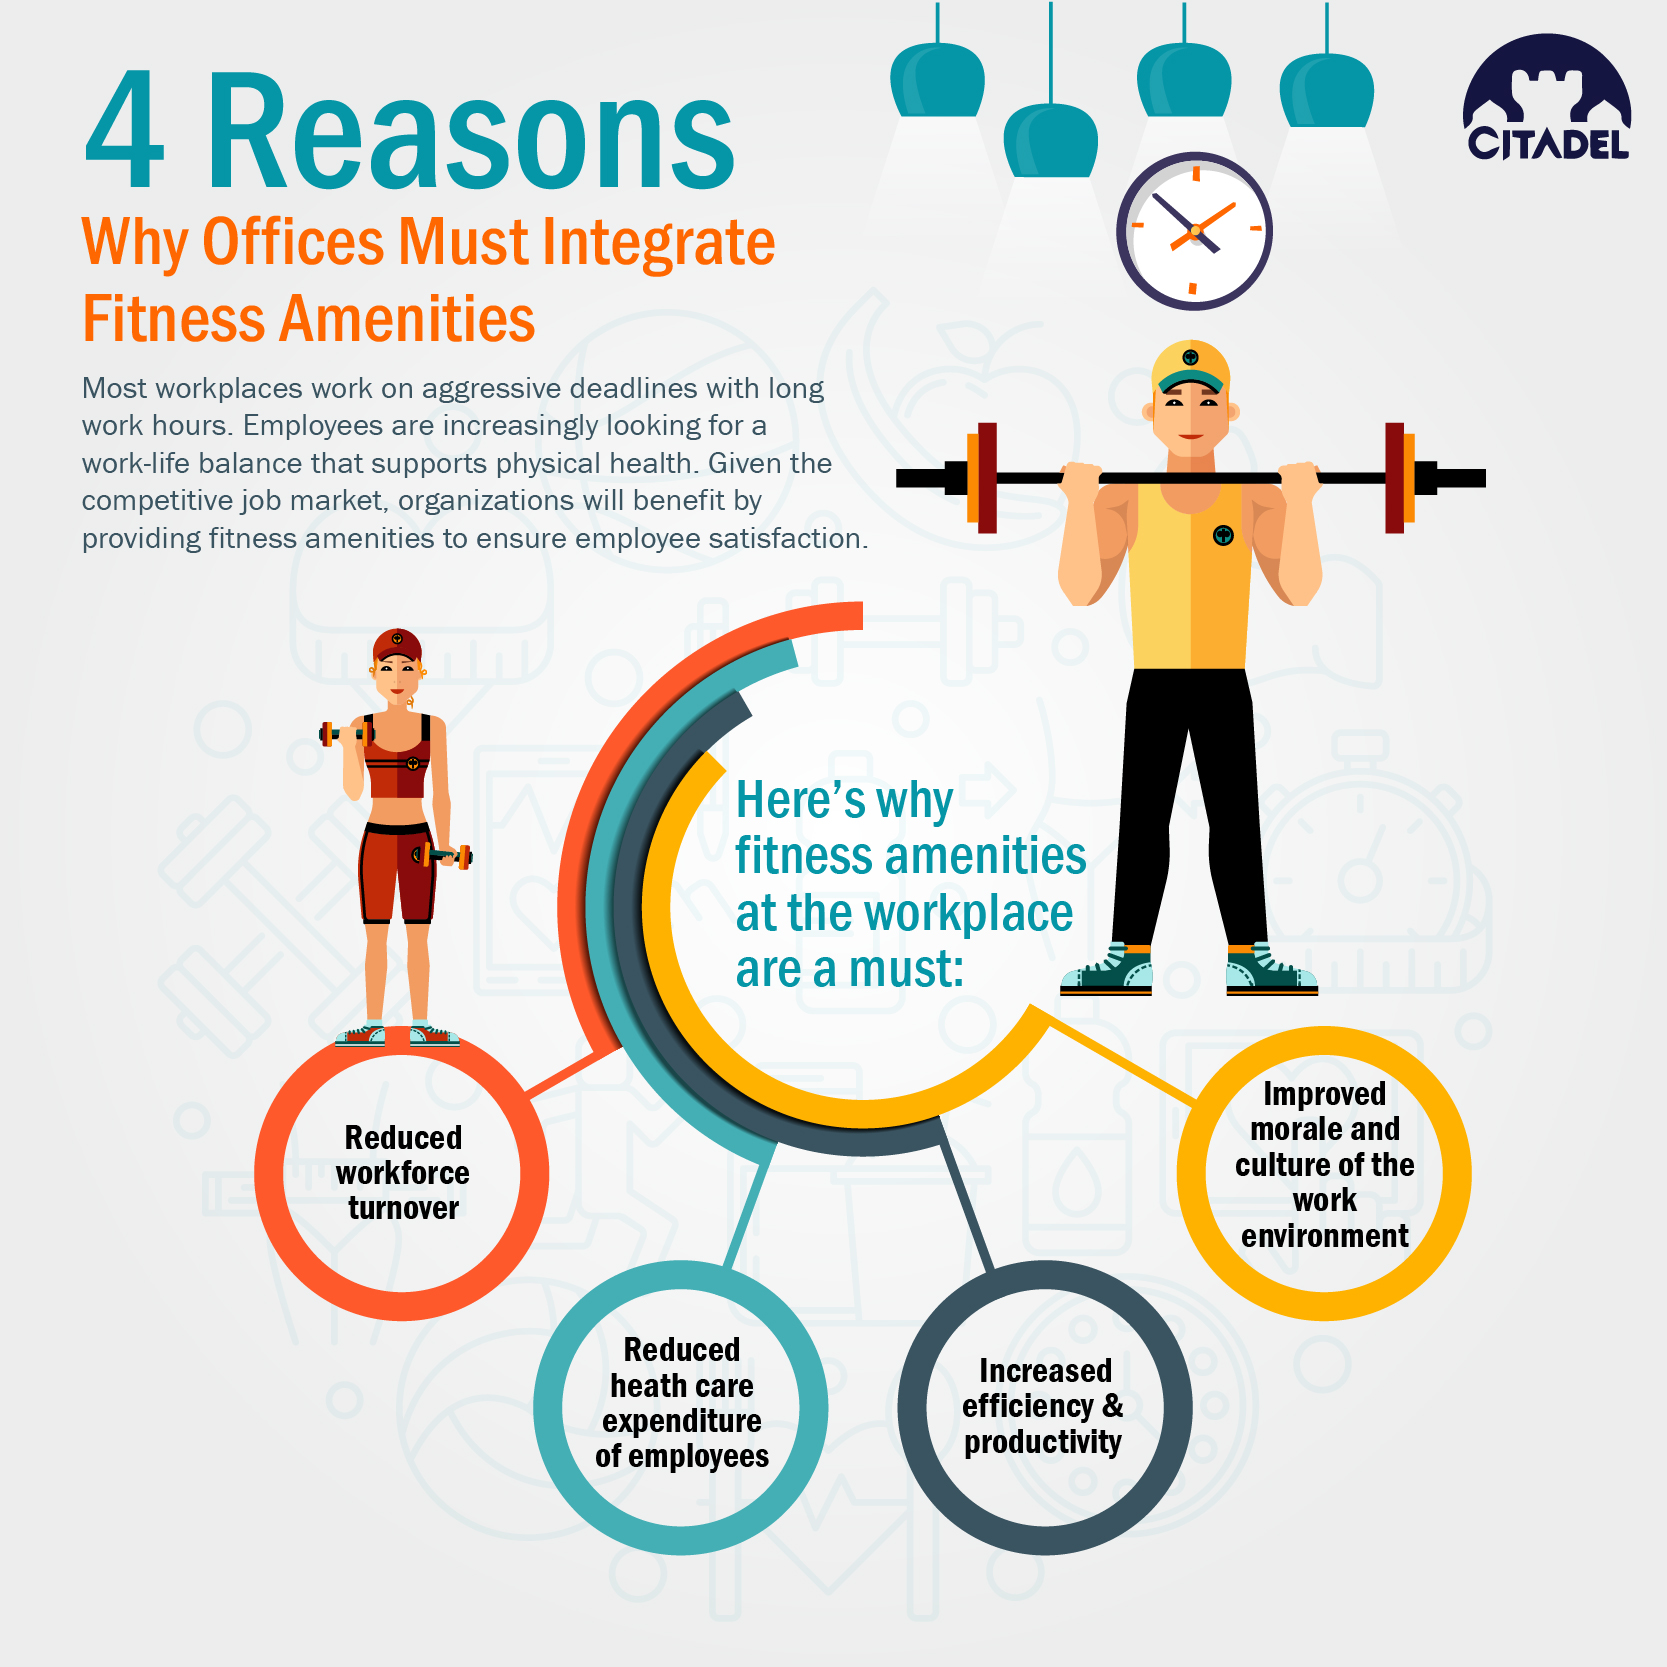 4 Reasons Why Offices Must Integrate Fitness Amenities